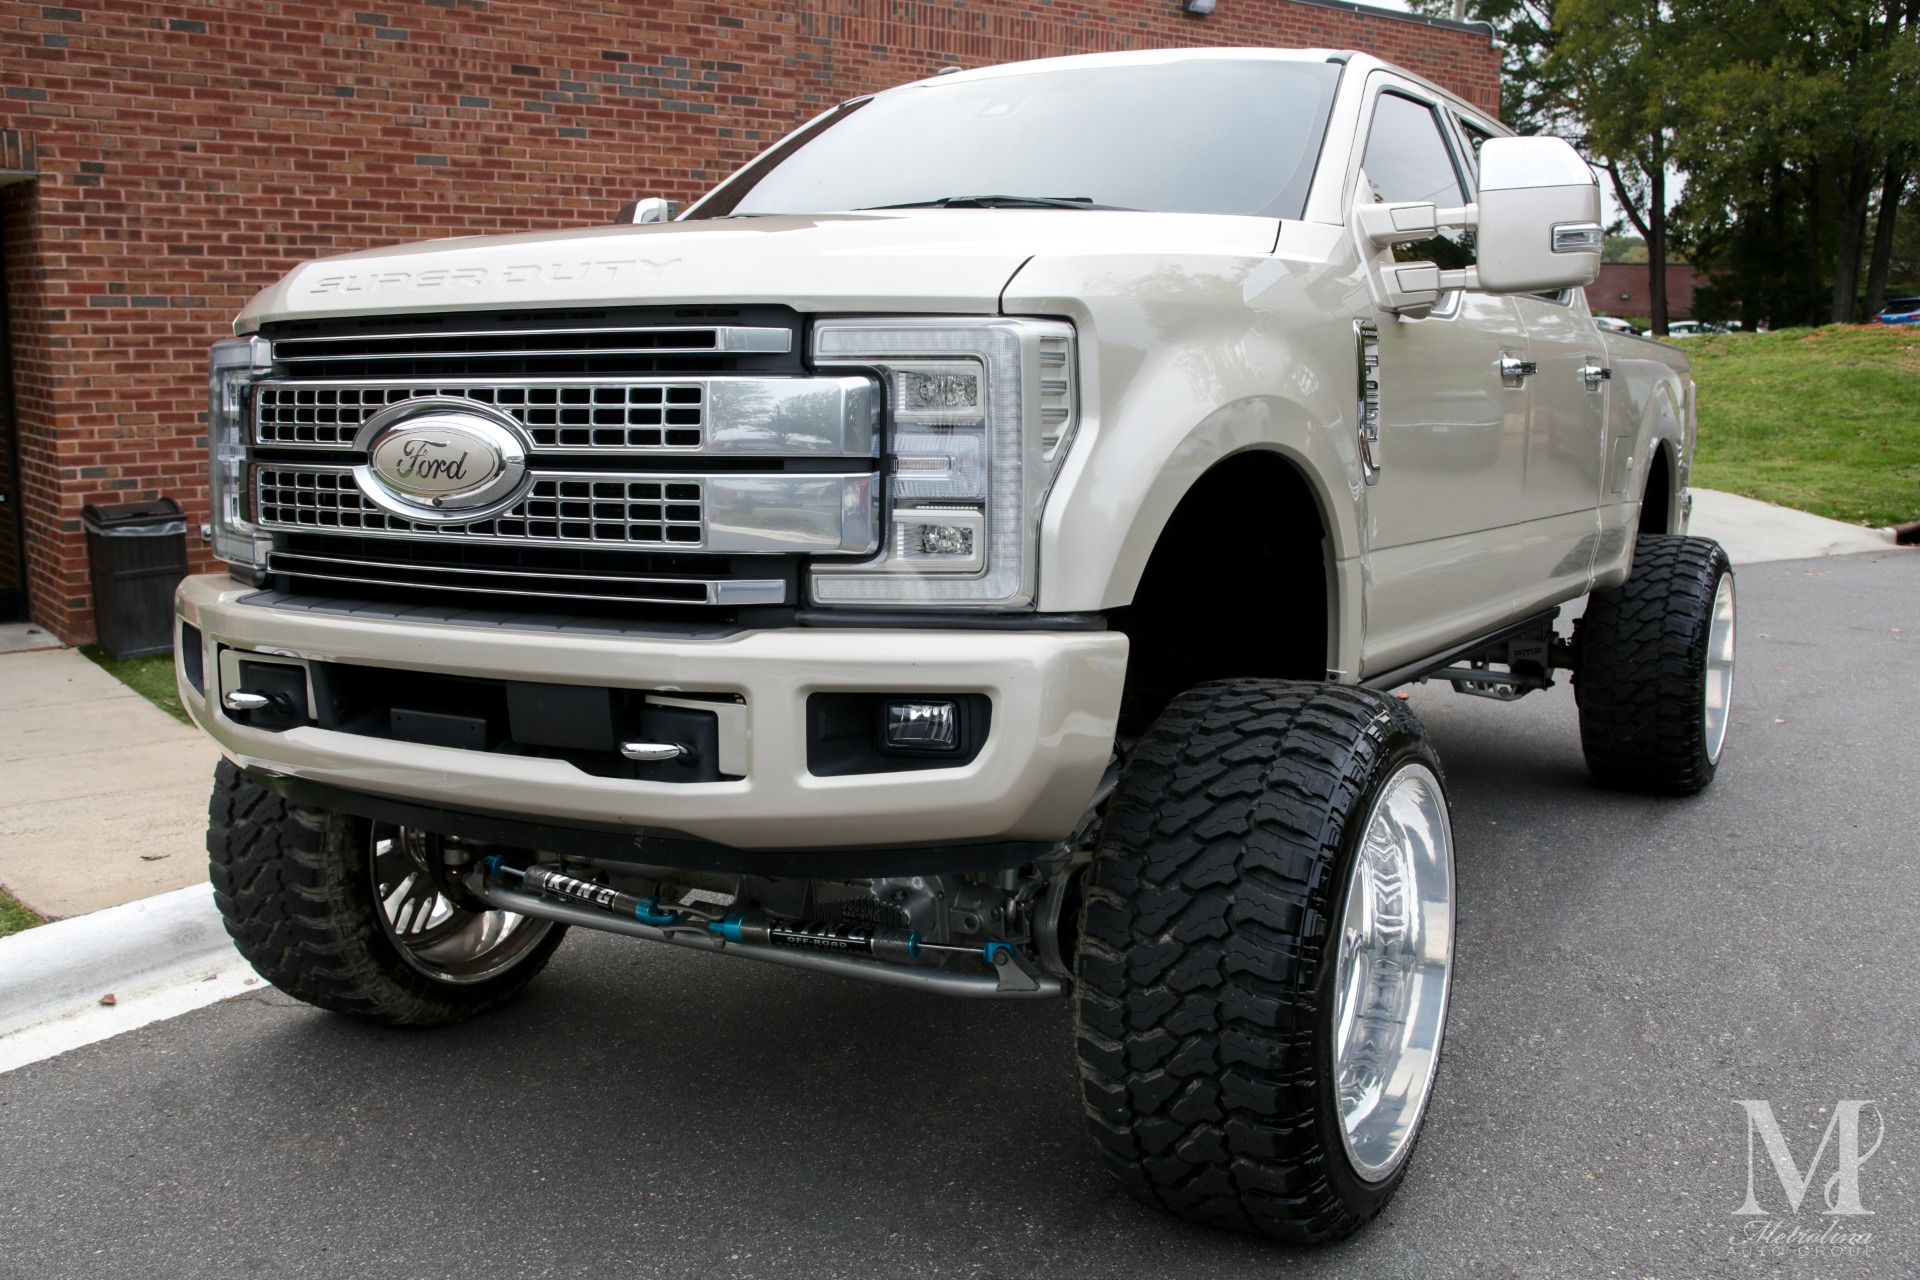 Used 2017 Ford F-250 Super Duty Platinum for sale $69,996 at Metrolina Auto Group in Charlotte NC 28217 - 2